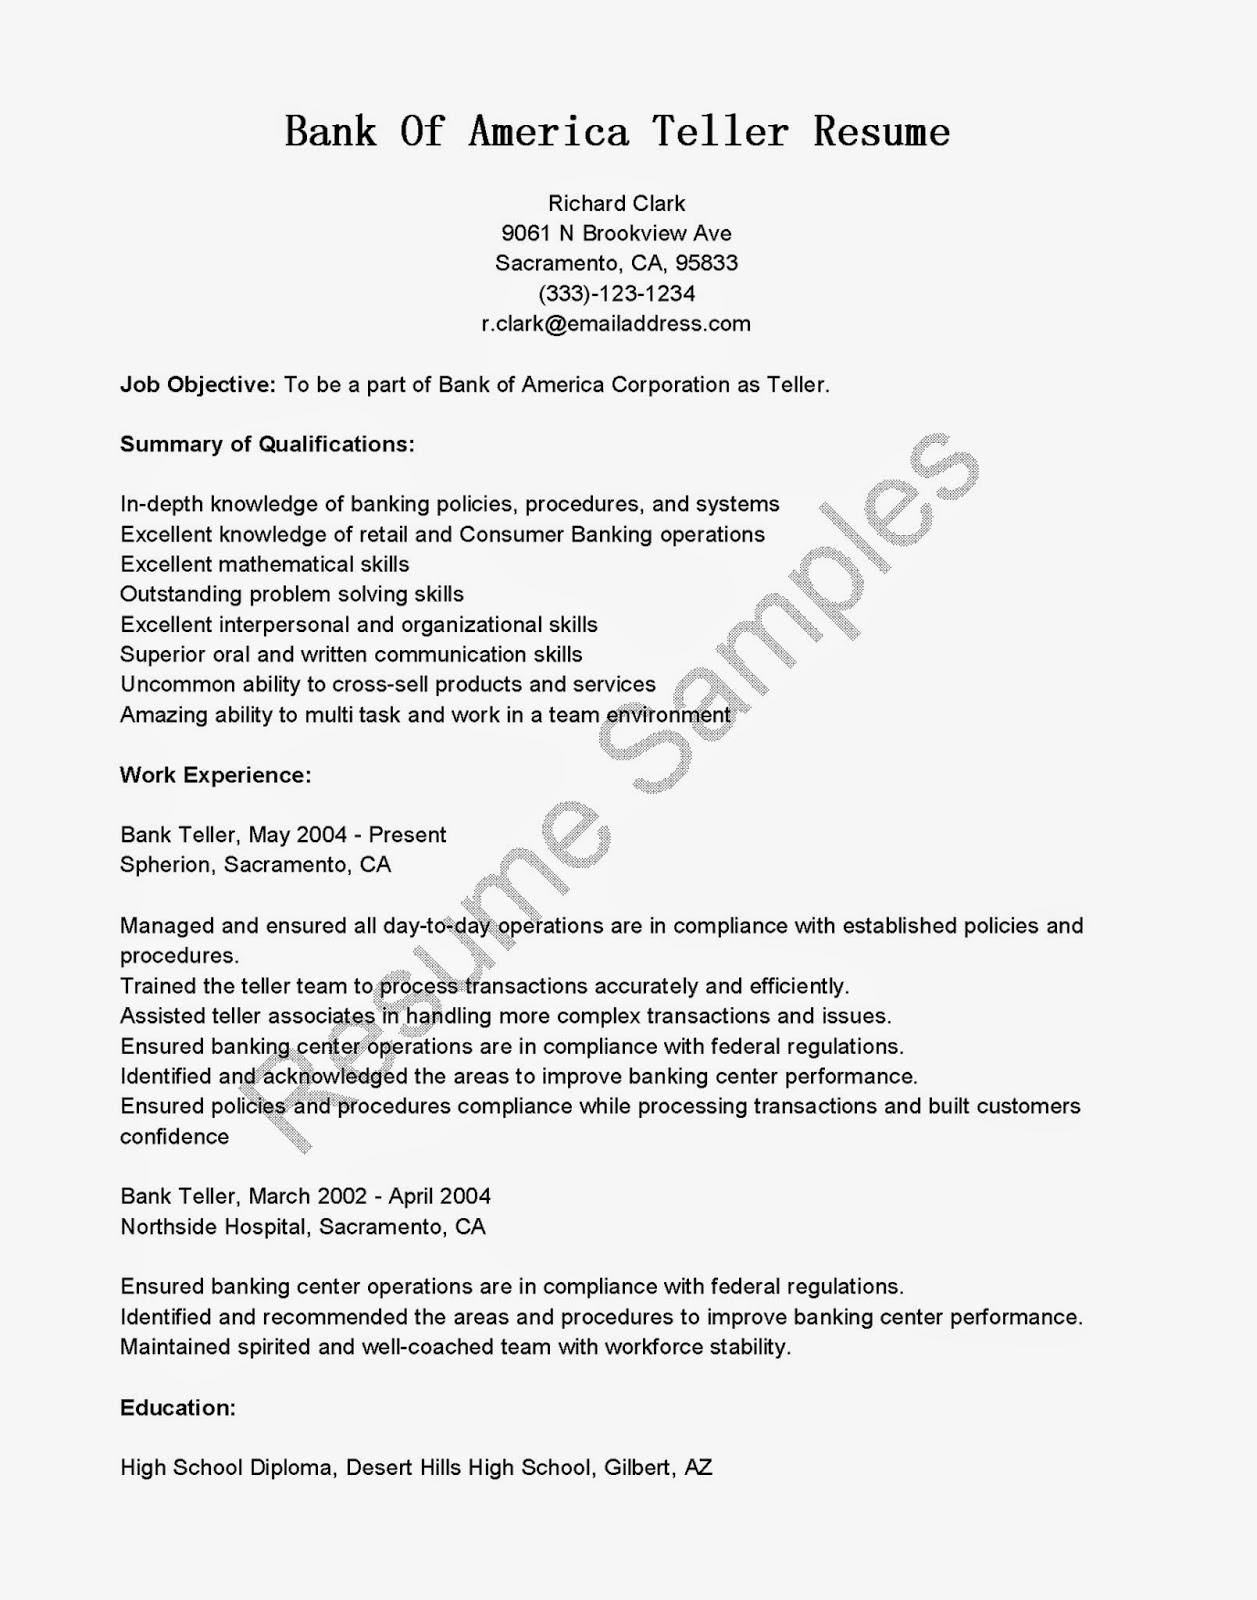 resume for bank job teller resume writing resume examples resume for bank job teller bank teller resume tips example snagajob sample resume resume samples bank